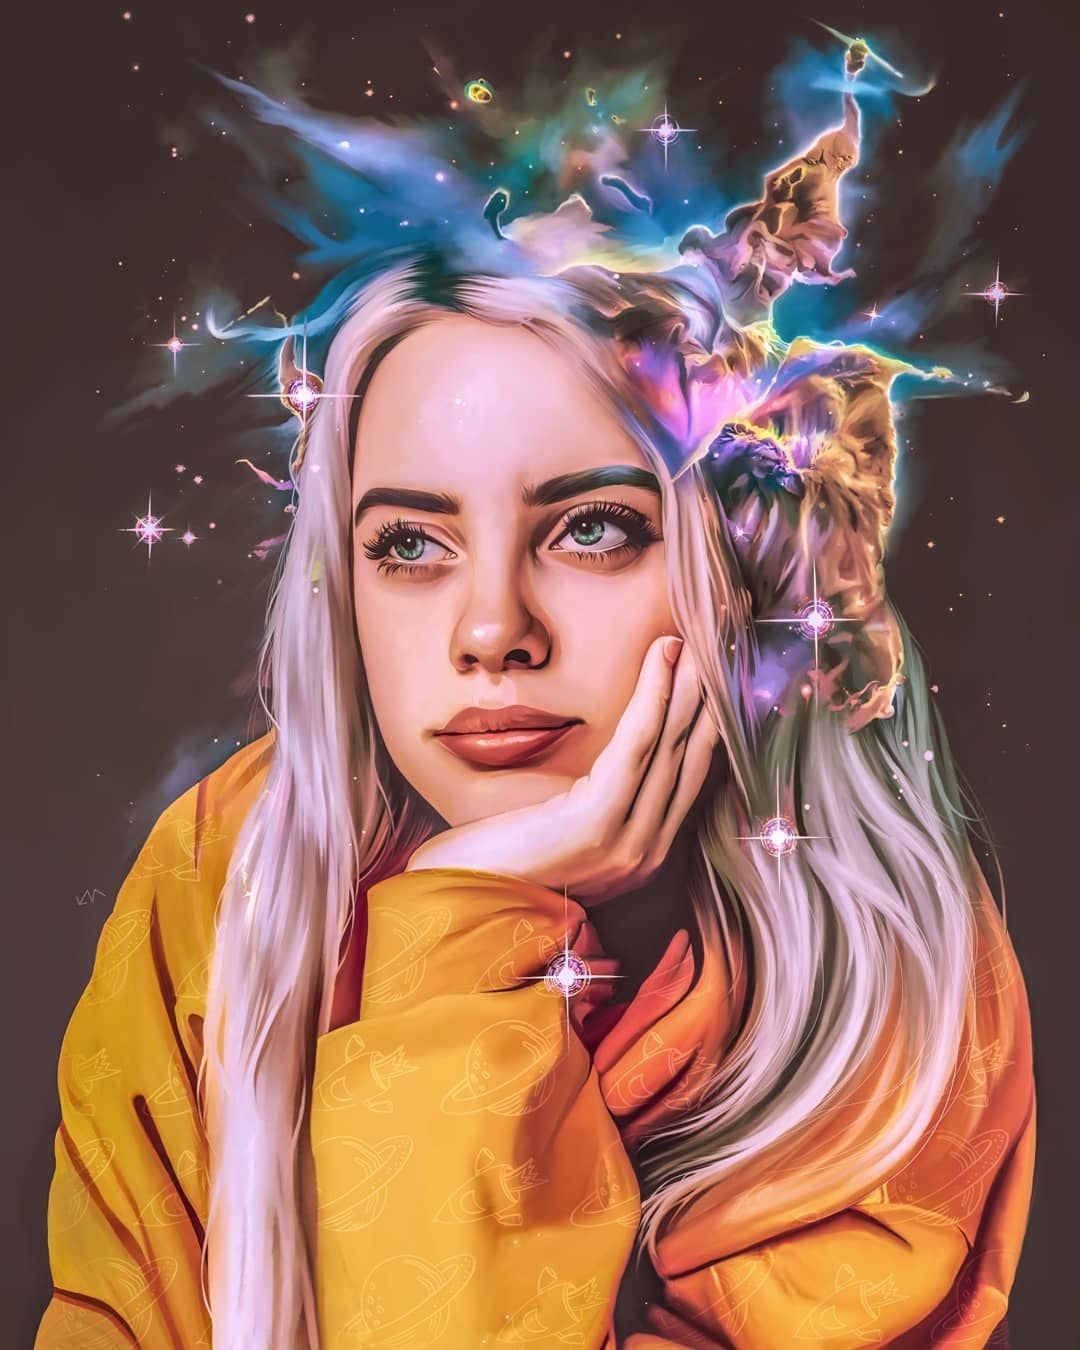 Pin By Veronica Trouve On Billi Elish Billie Eilish Billie Singer